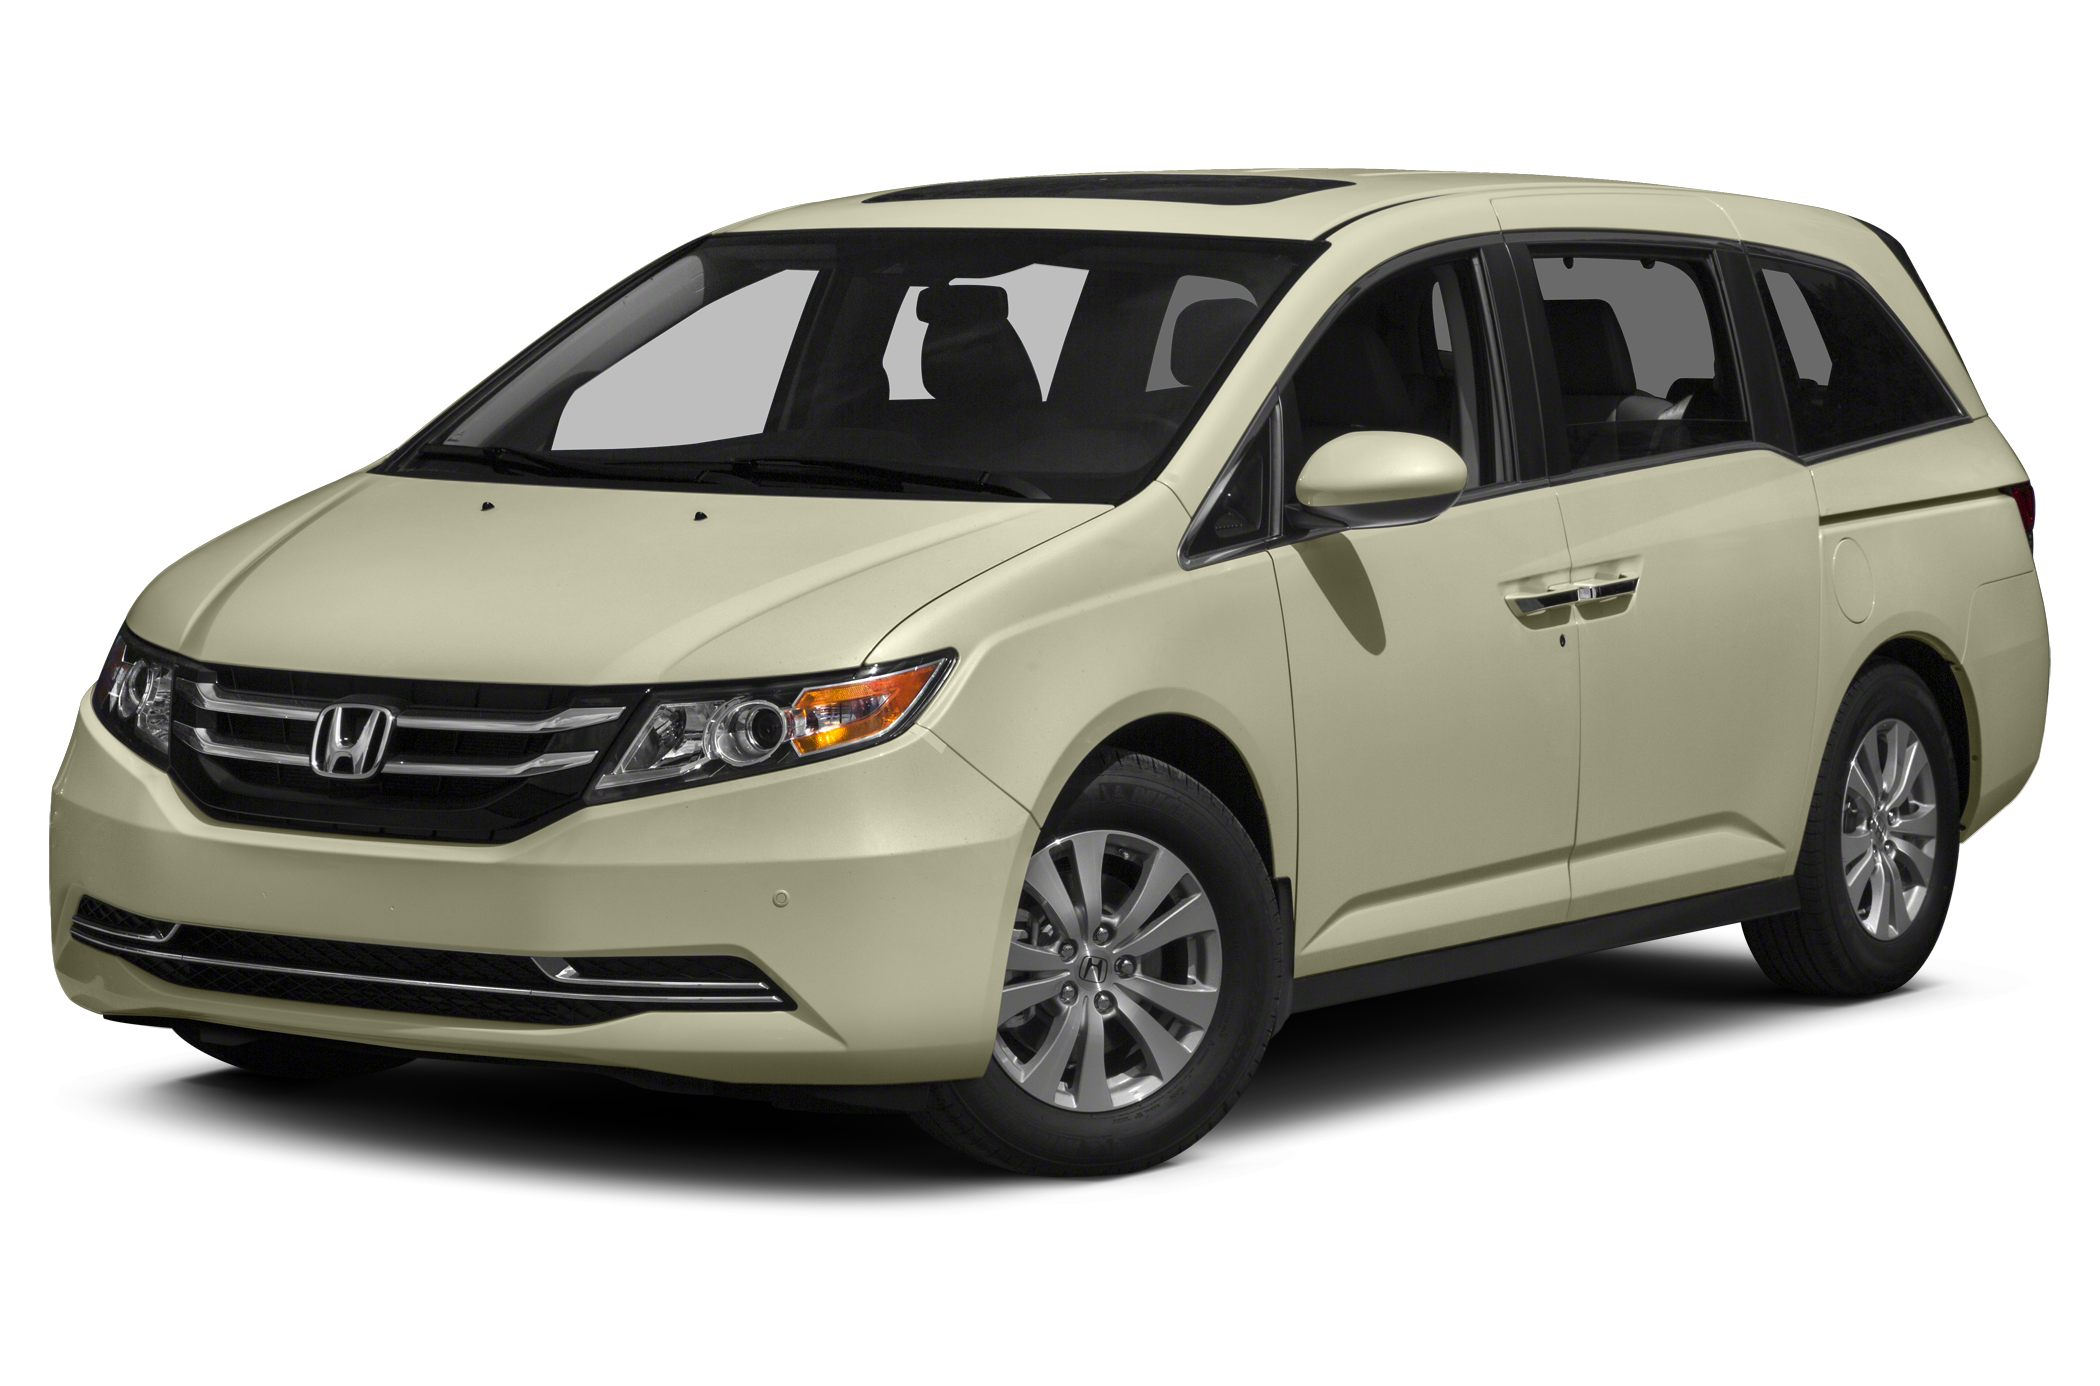 2015 Honda Odyssey EX-L w Navigation Only 20k Miles - EX-L Edition - Crystal Black Pearl on Truff